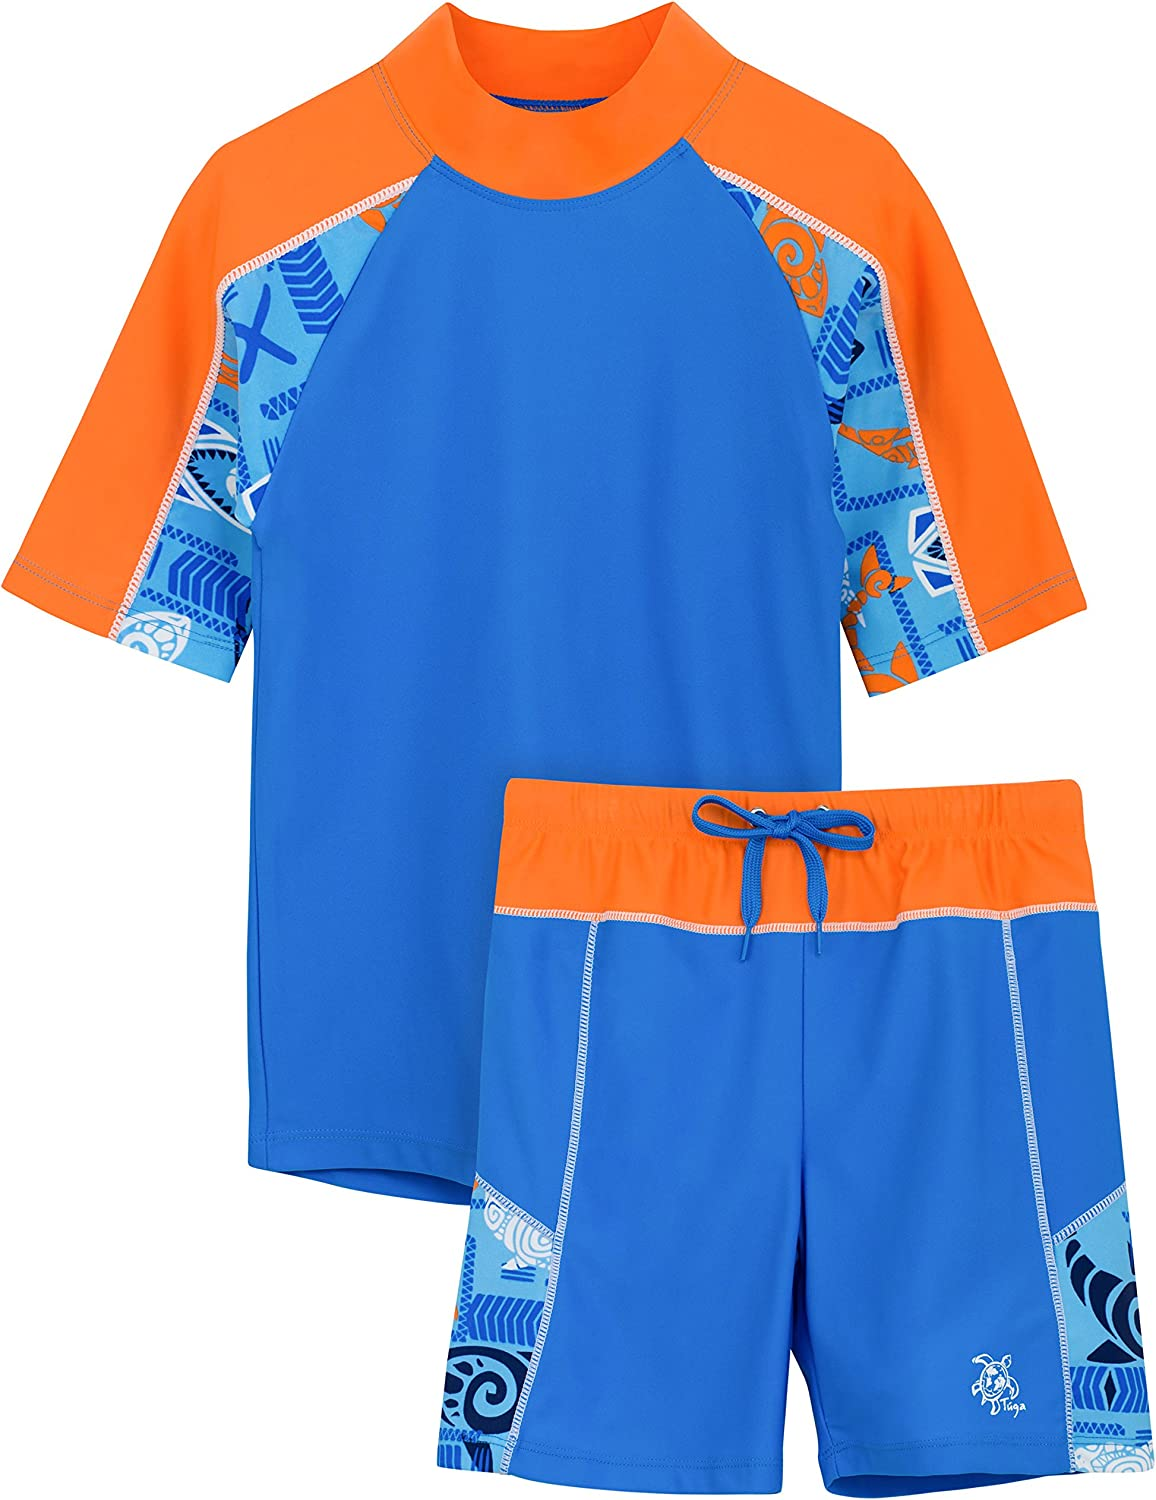 Tuga Boys Max 43% OFF Two-Piece Short Sleeve Swimsuit Years Attention brand UPF 2-14 50 Set